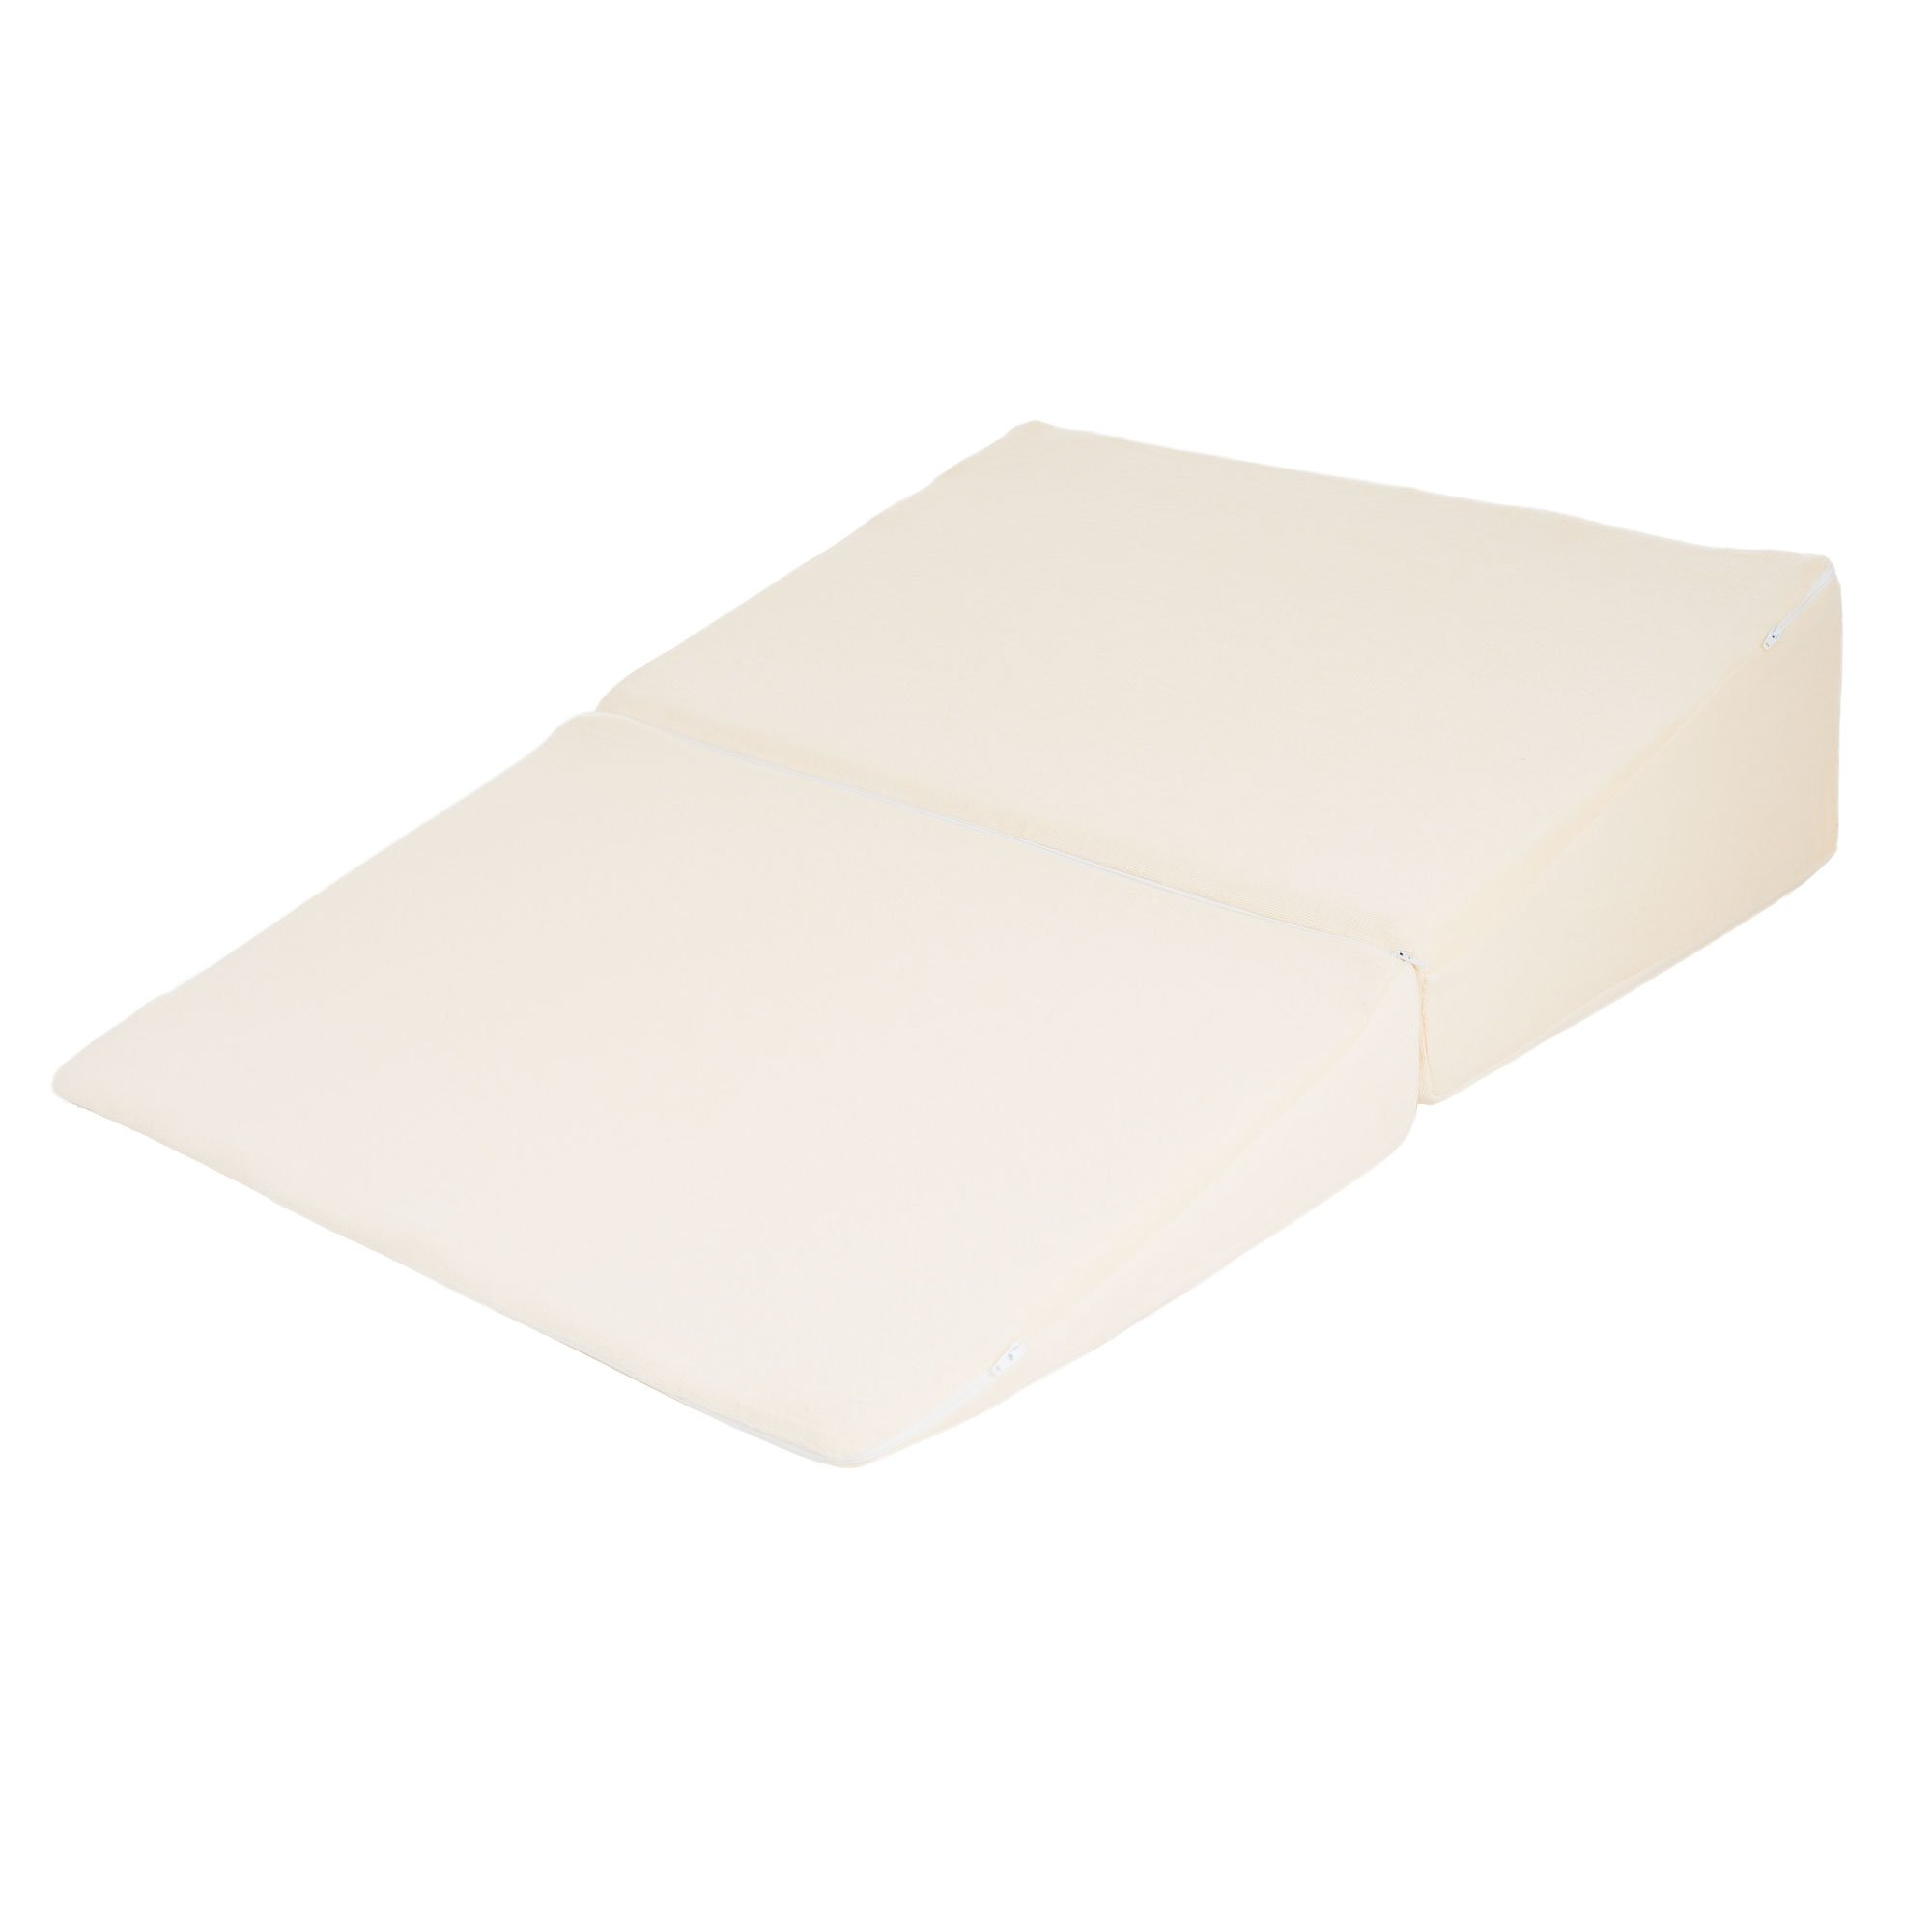 Lavish Home Folding Wedge Memory Foam Pillow - 31'' x 24'' x 7''